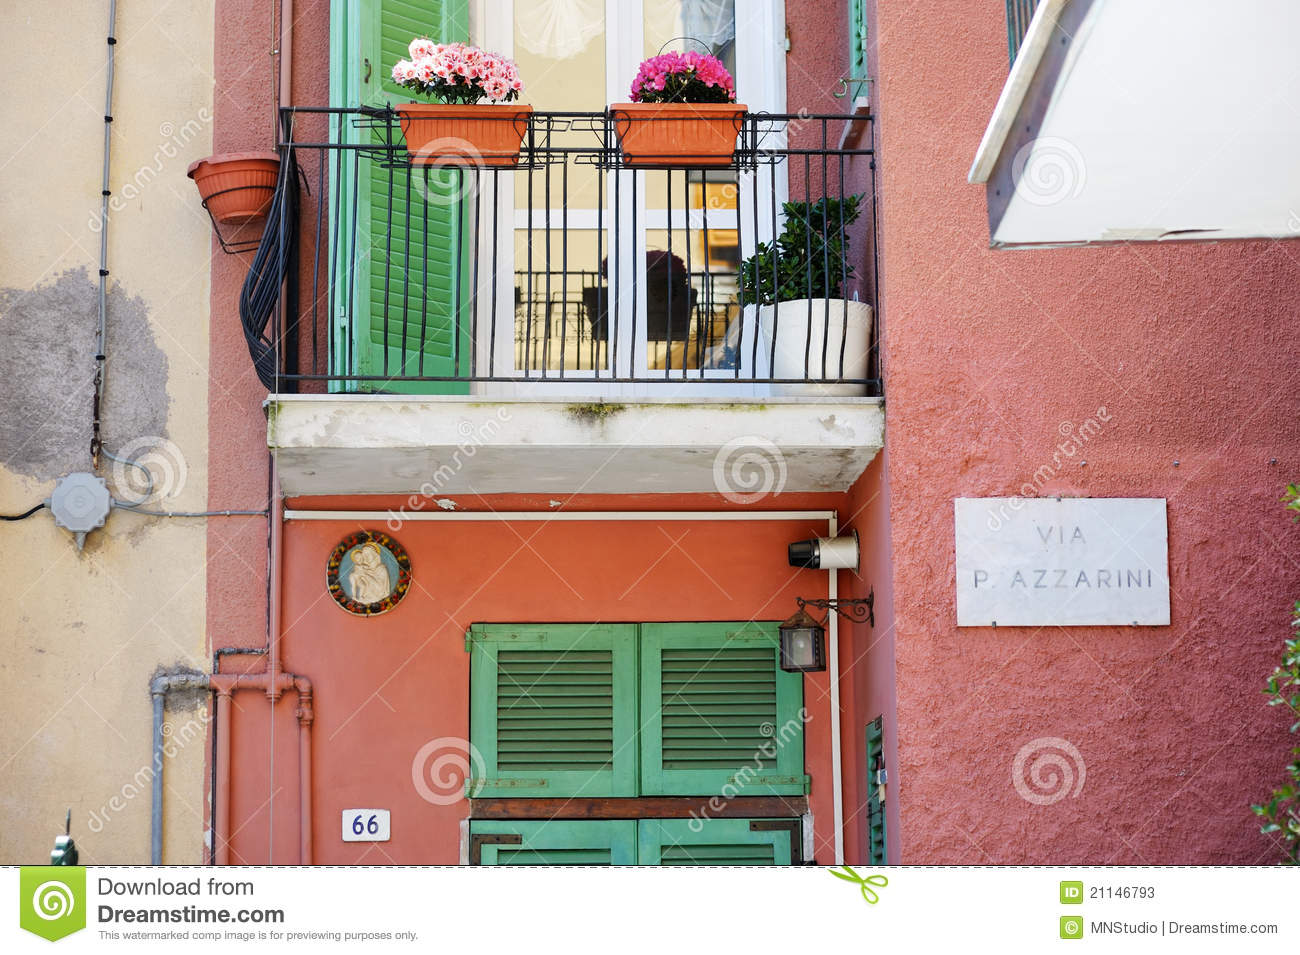 A colorful balcony in italy stock photos image 21146793 for Balcony in italian